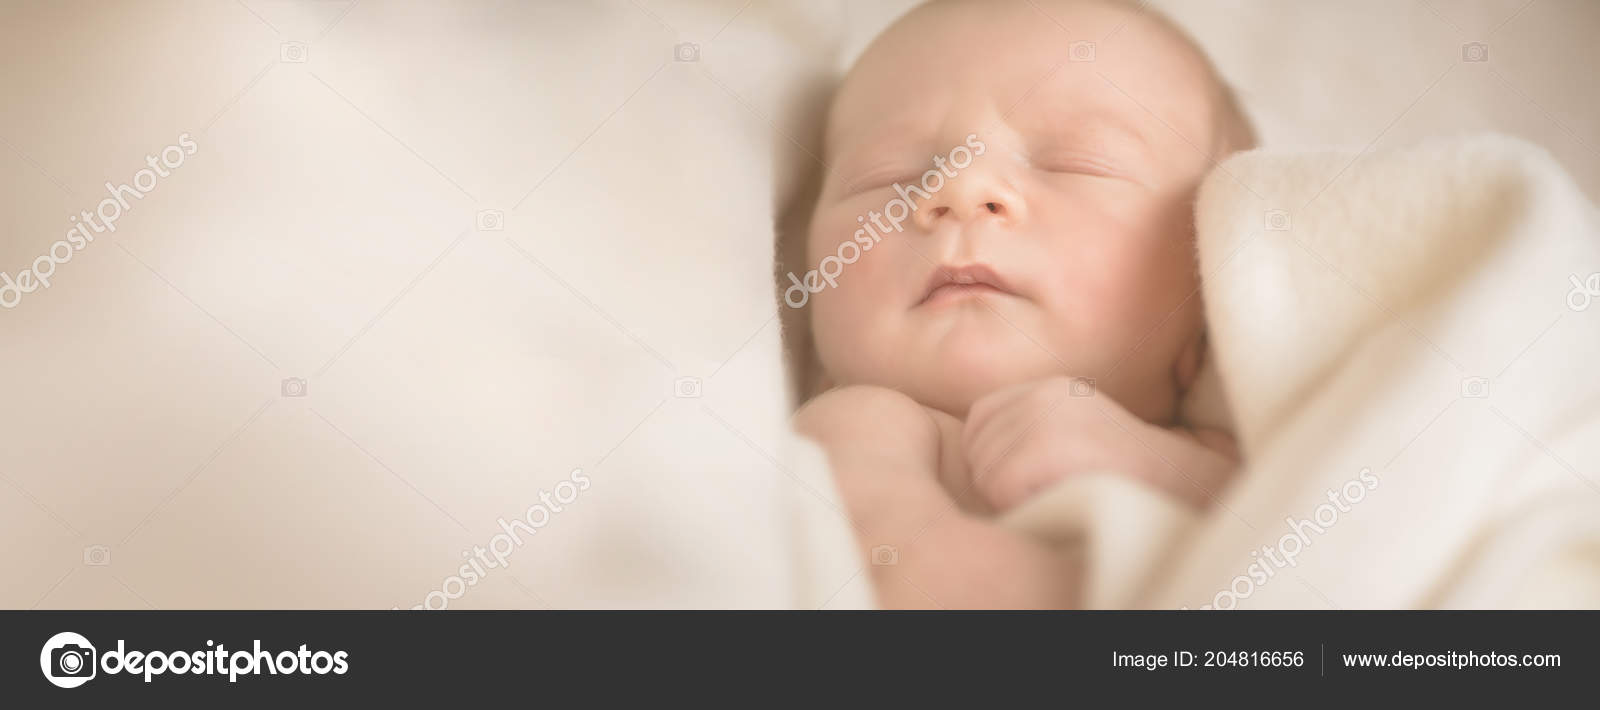 Little Sleeping Newborn Baby In Wrap Creamy Blanket 13 Days Old Copy Space For Your Text Maternity Family Birth Concept Banner Stock Photo C J Chizhe 204816656